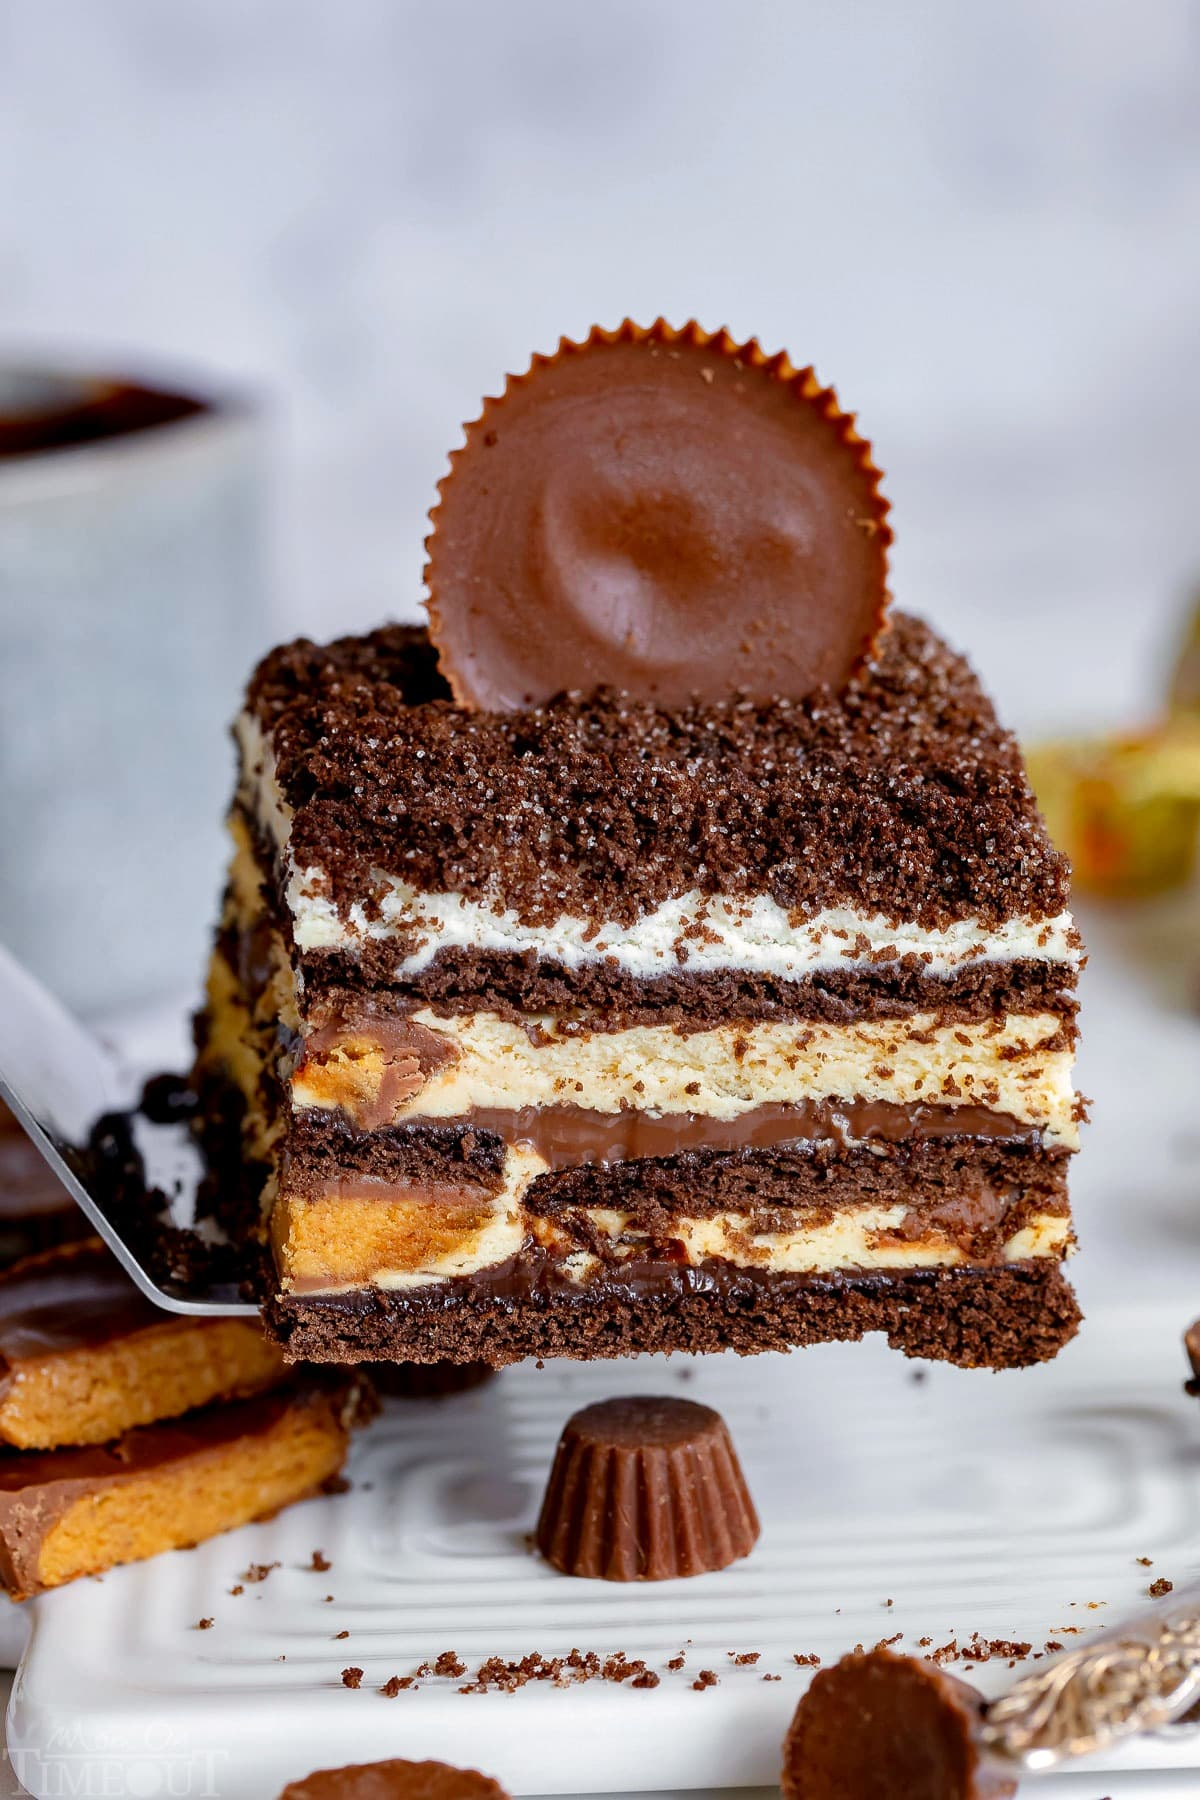 """icebox-cake-chocolate-cacahuete-mantequilla """"ancho ="""" 732 """"altura ="""" 1099"""